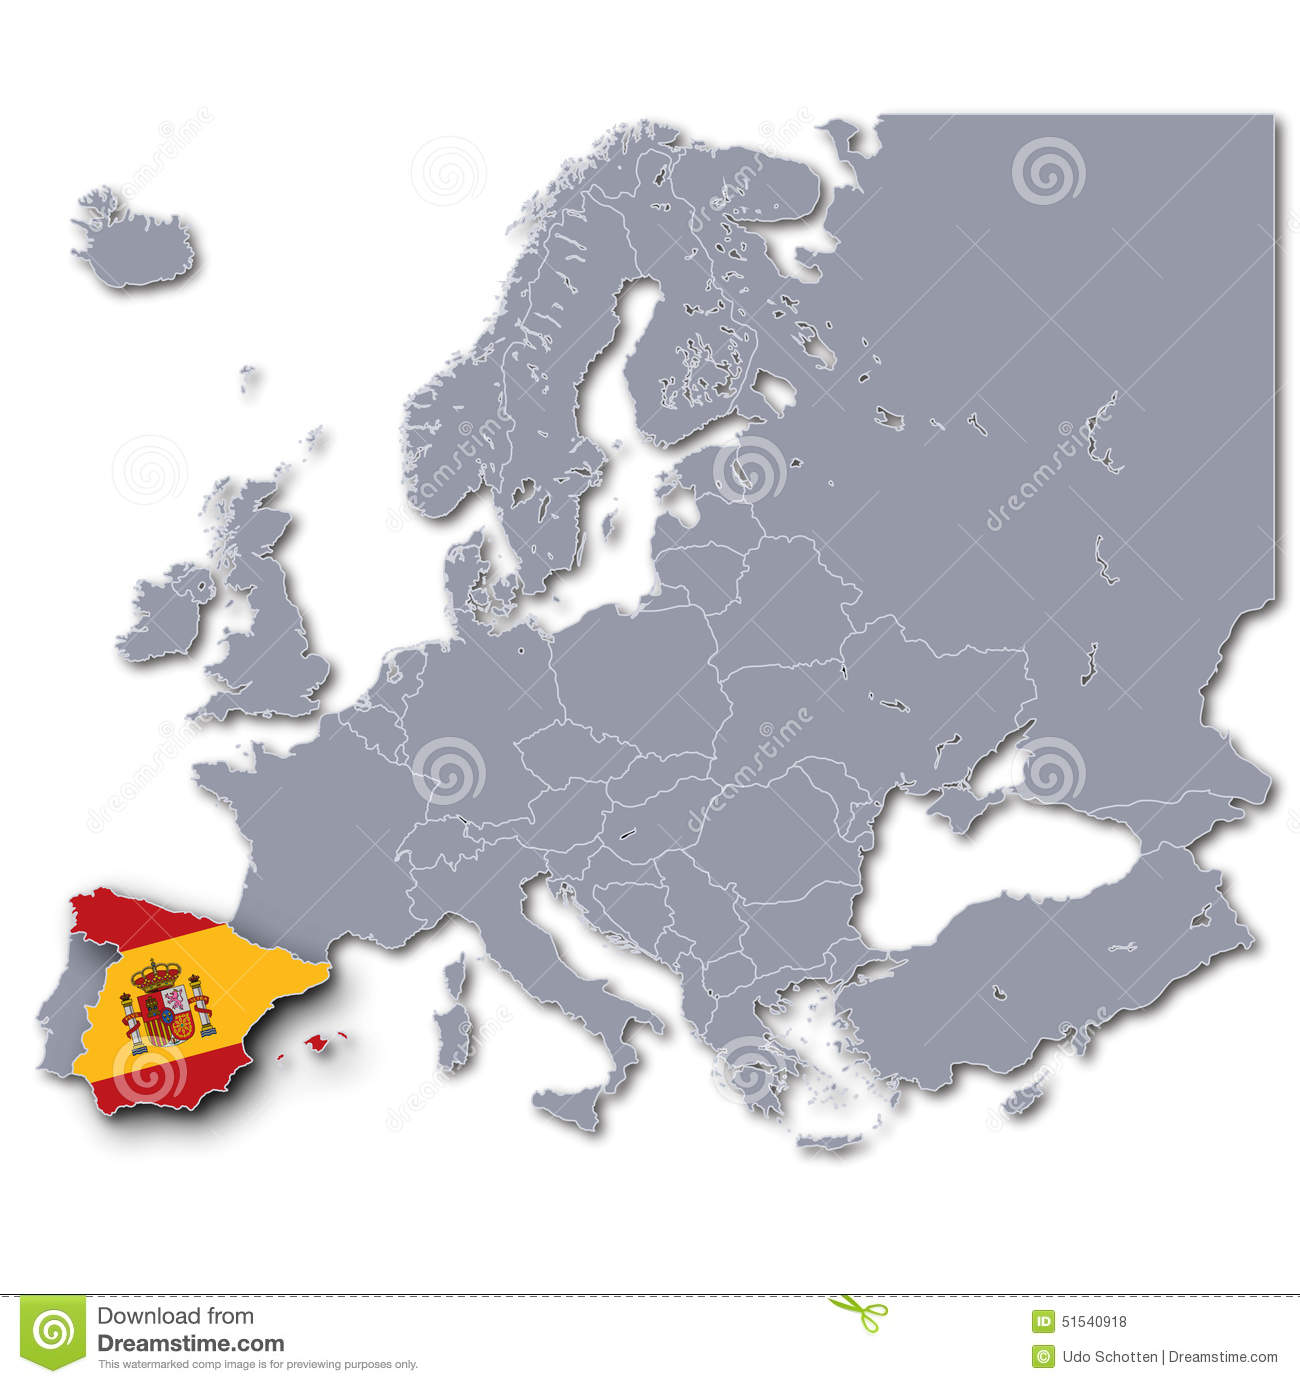 Spain On A Map Of Europe.Map Of Europe With Spain Stock Photo Image Of Area Monarchy 51540918